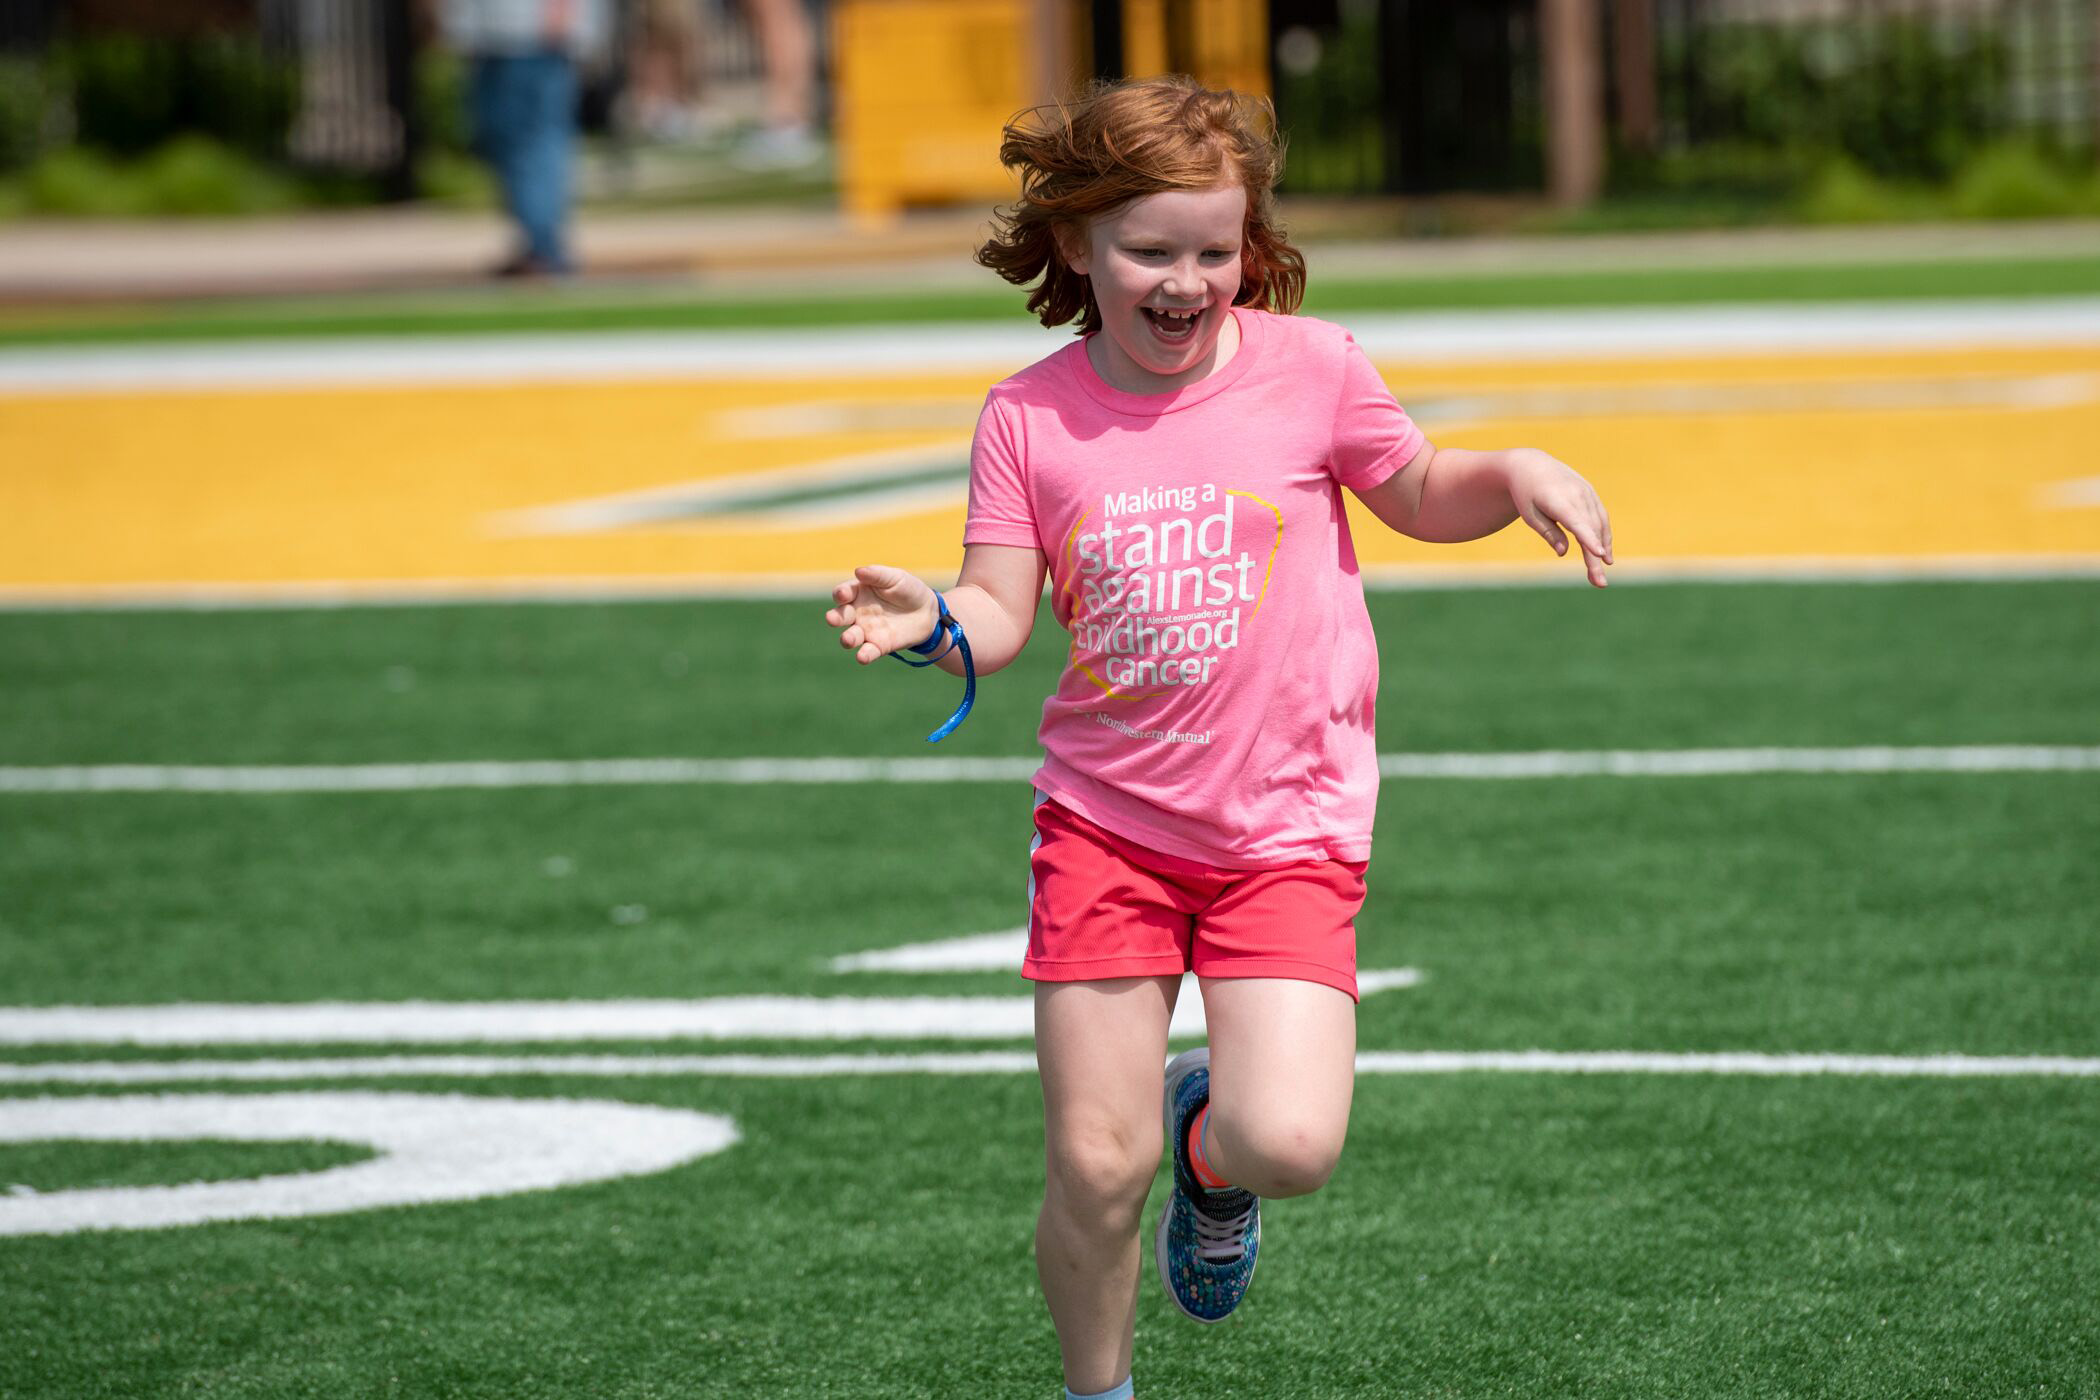 Northwestern Mutual's Ultimate Campout Fighting Childhood Cancer: When kids fighting cancer can just be kids– nothing is more special. Children and families race down the field at the Green Bay Packer's Titletown development.